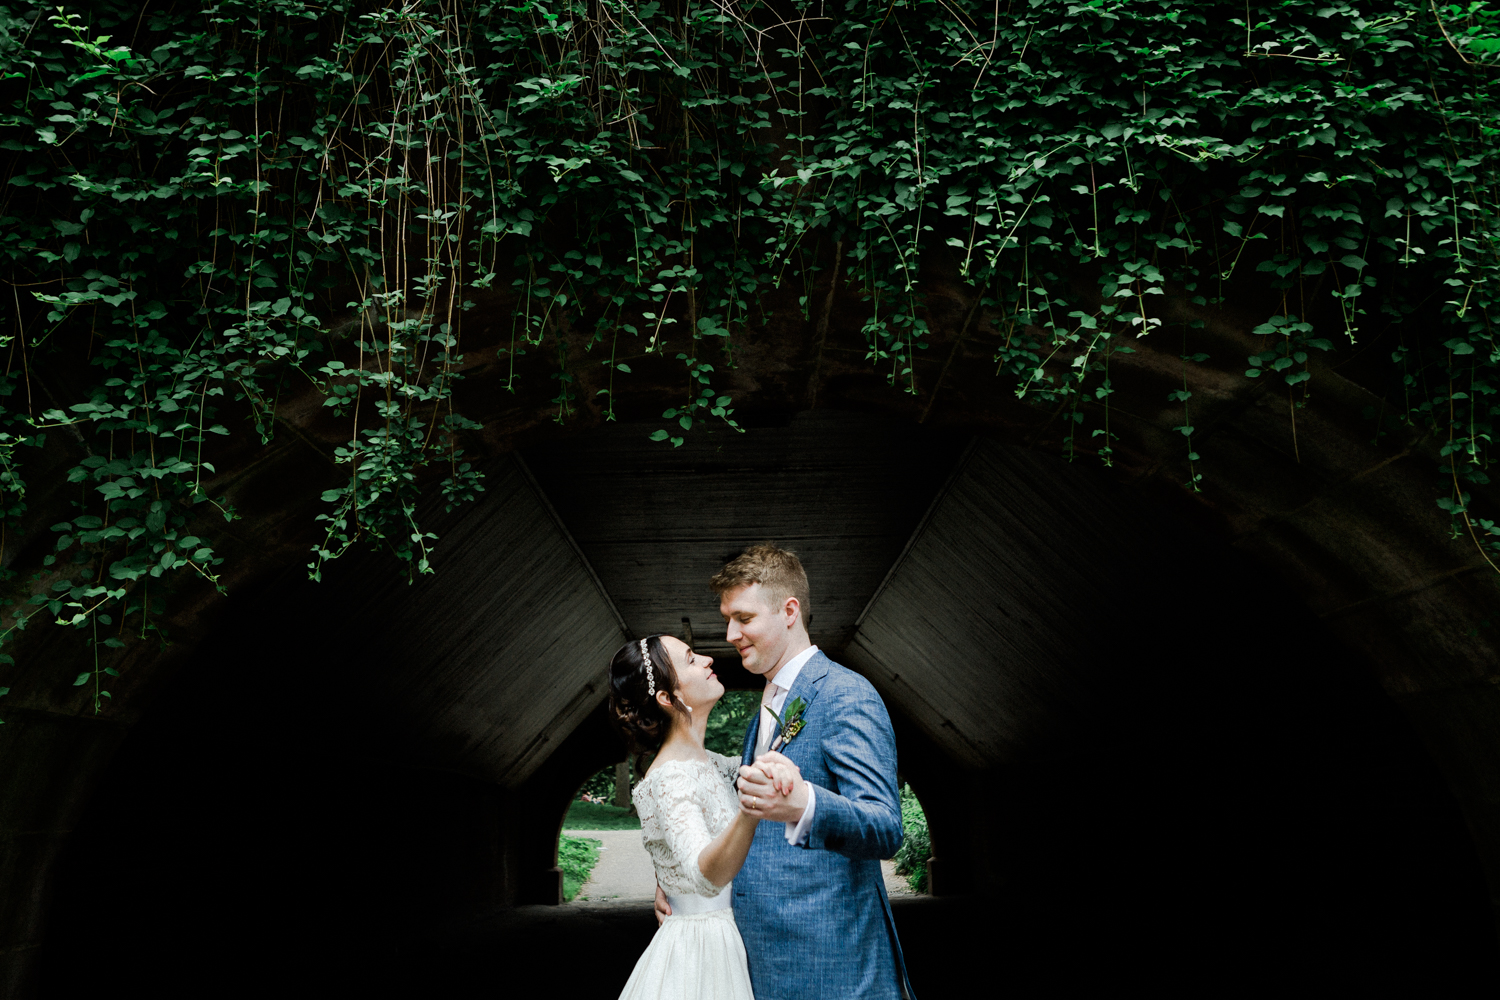 lissie_loomis_photo_nyc_brooklyn_wedding_engagement_photographer_photography-54.JPG